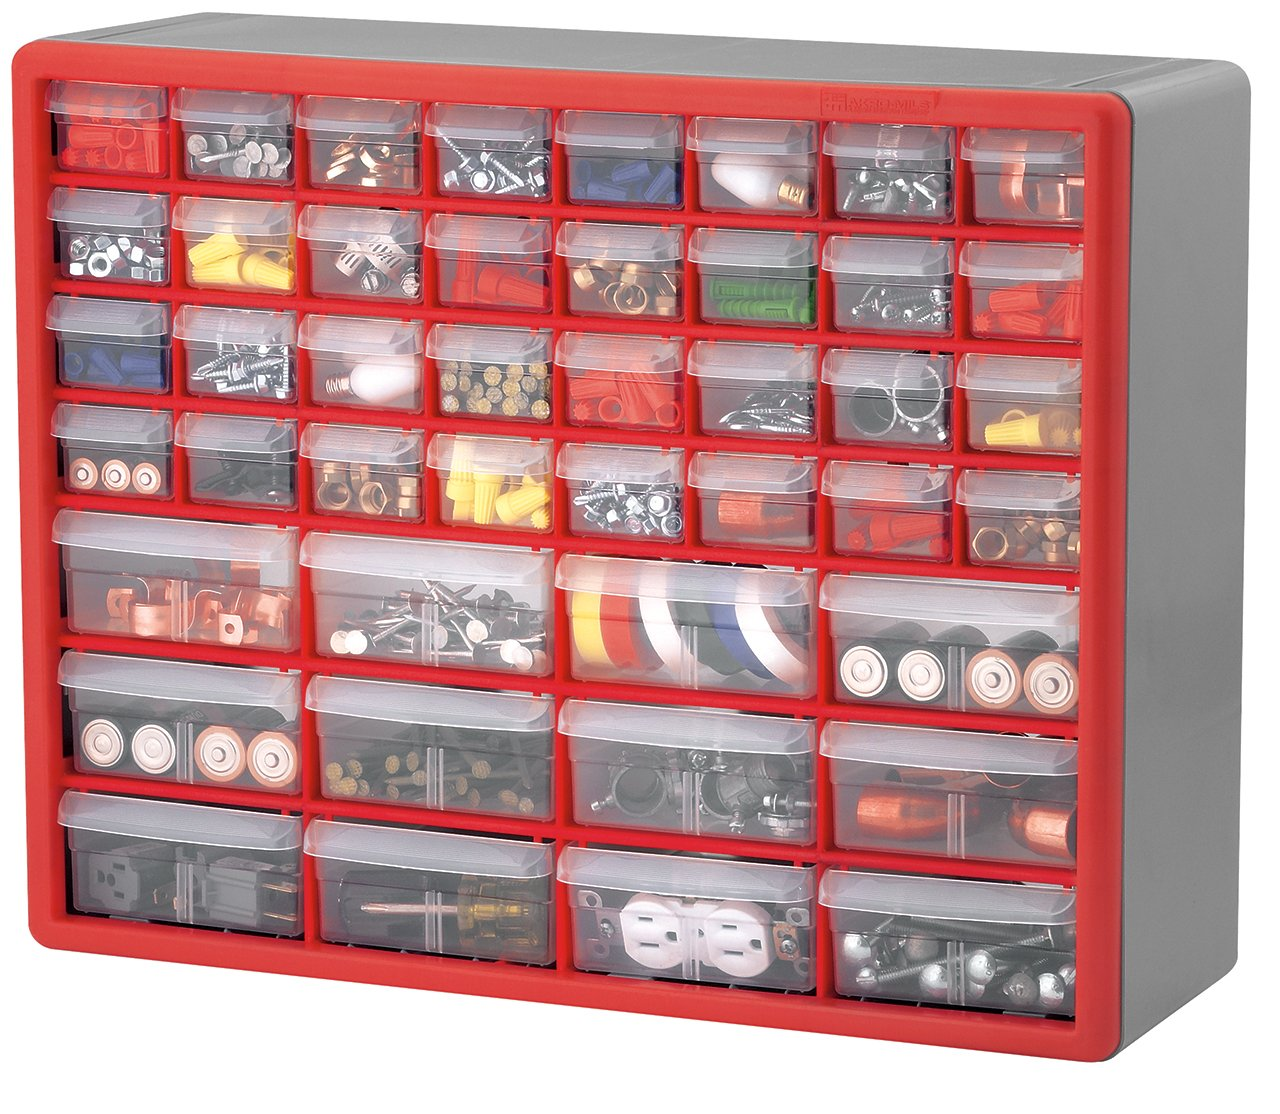 Akro Mils 10744 44-Drawer Hardware and Craft Cabinet, Red and Gray Akro-Mils